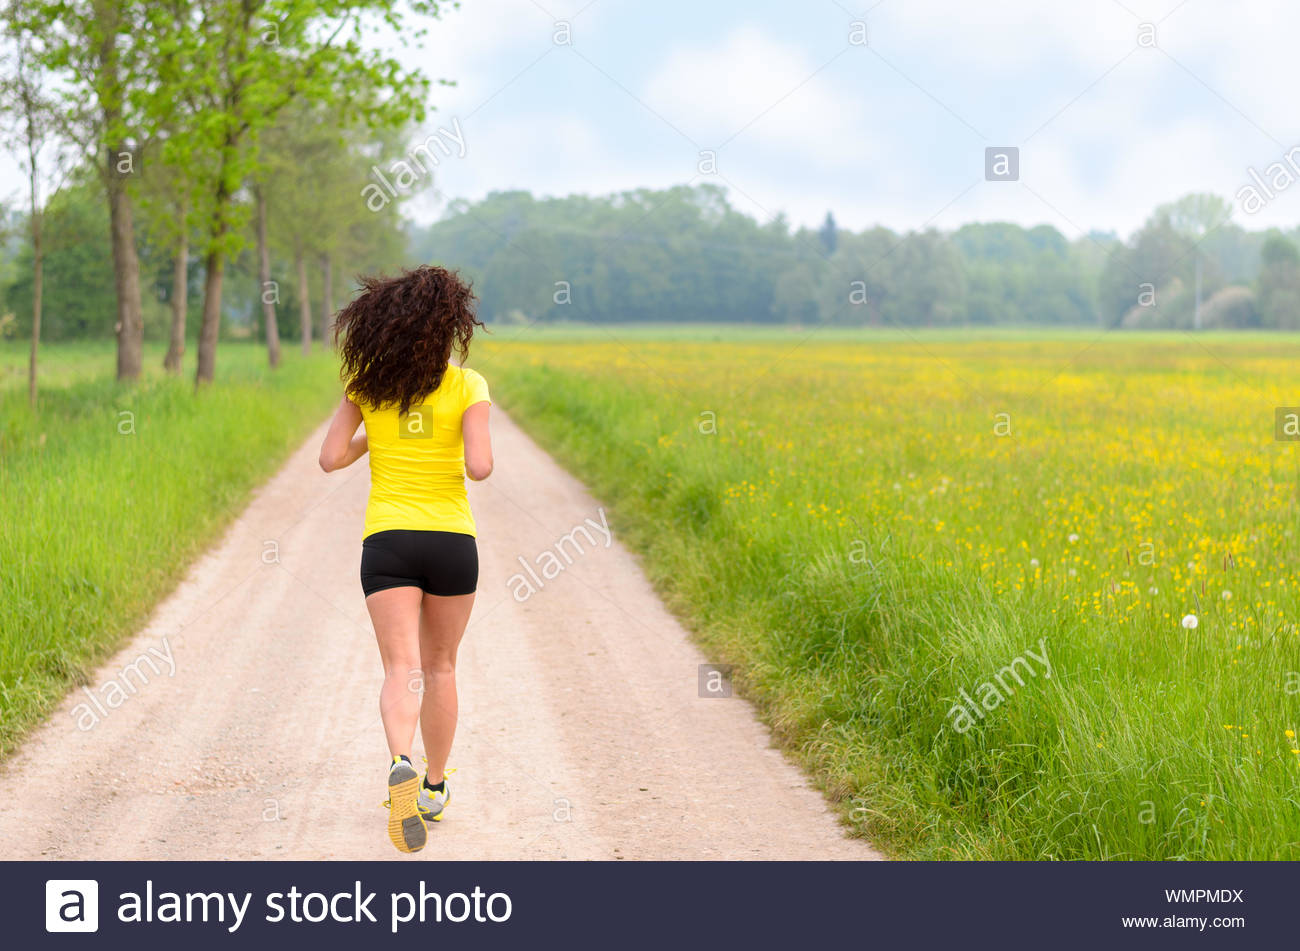 Fit muscular young woman jogging in farmland along a dirt track between lush green fields in a healthy lifestyle concept Stock Photo